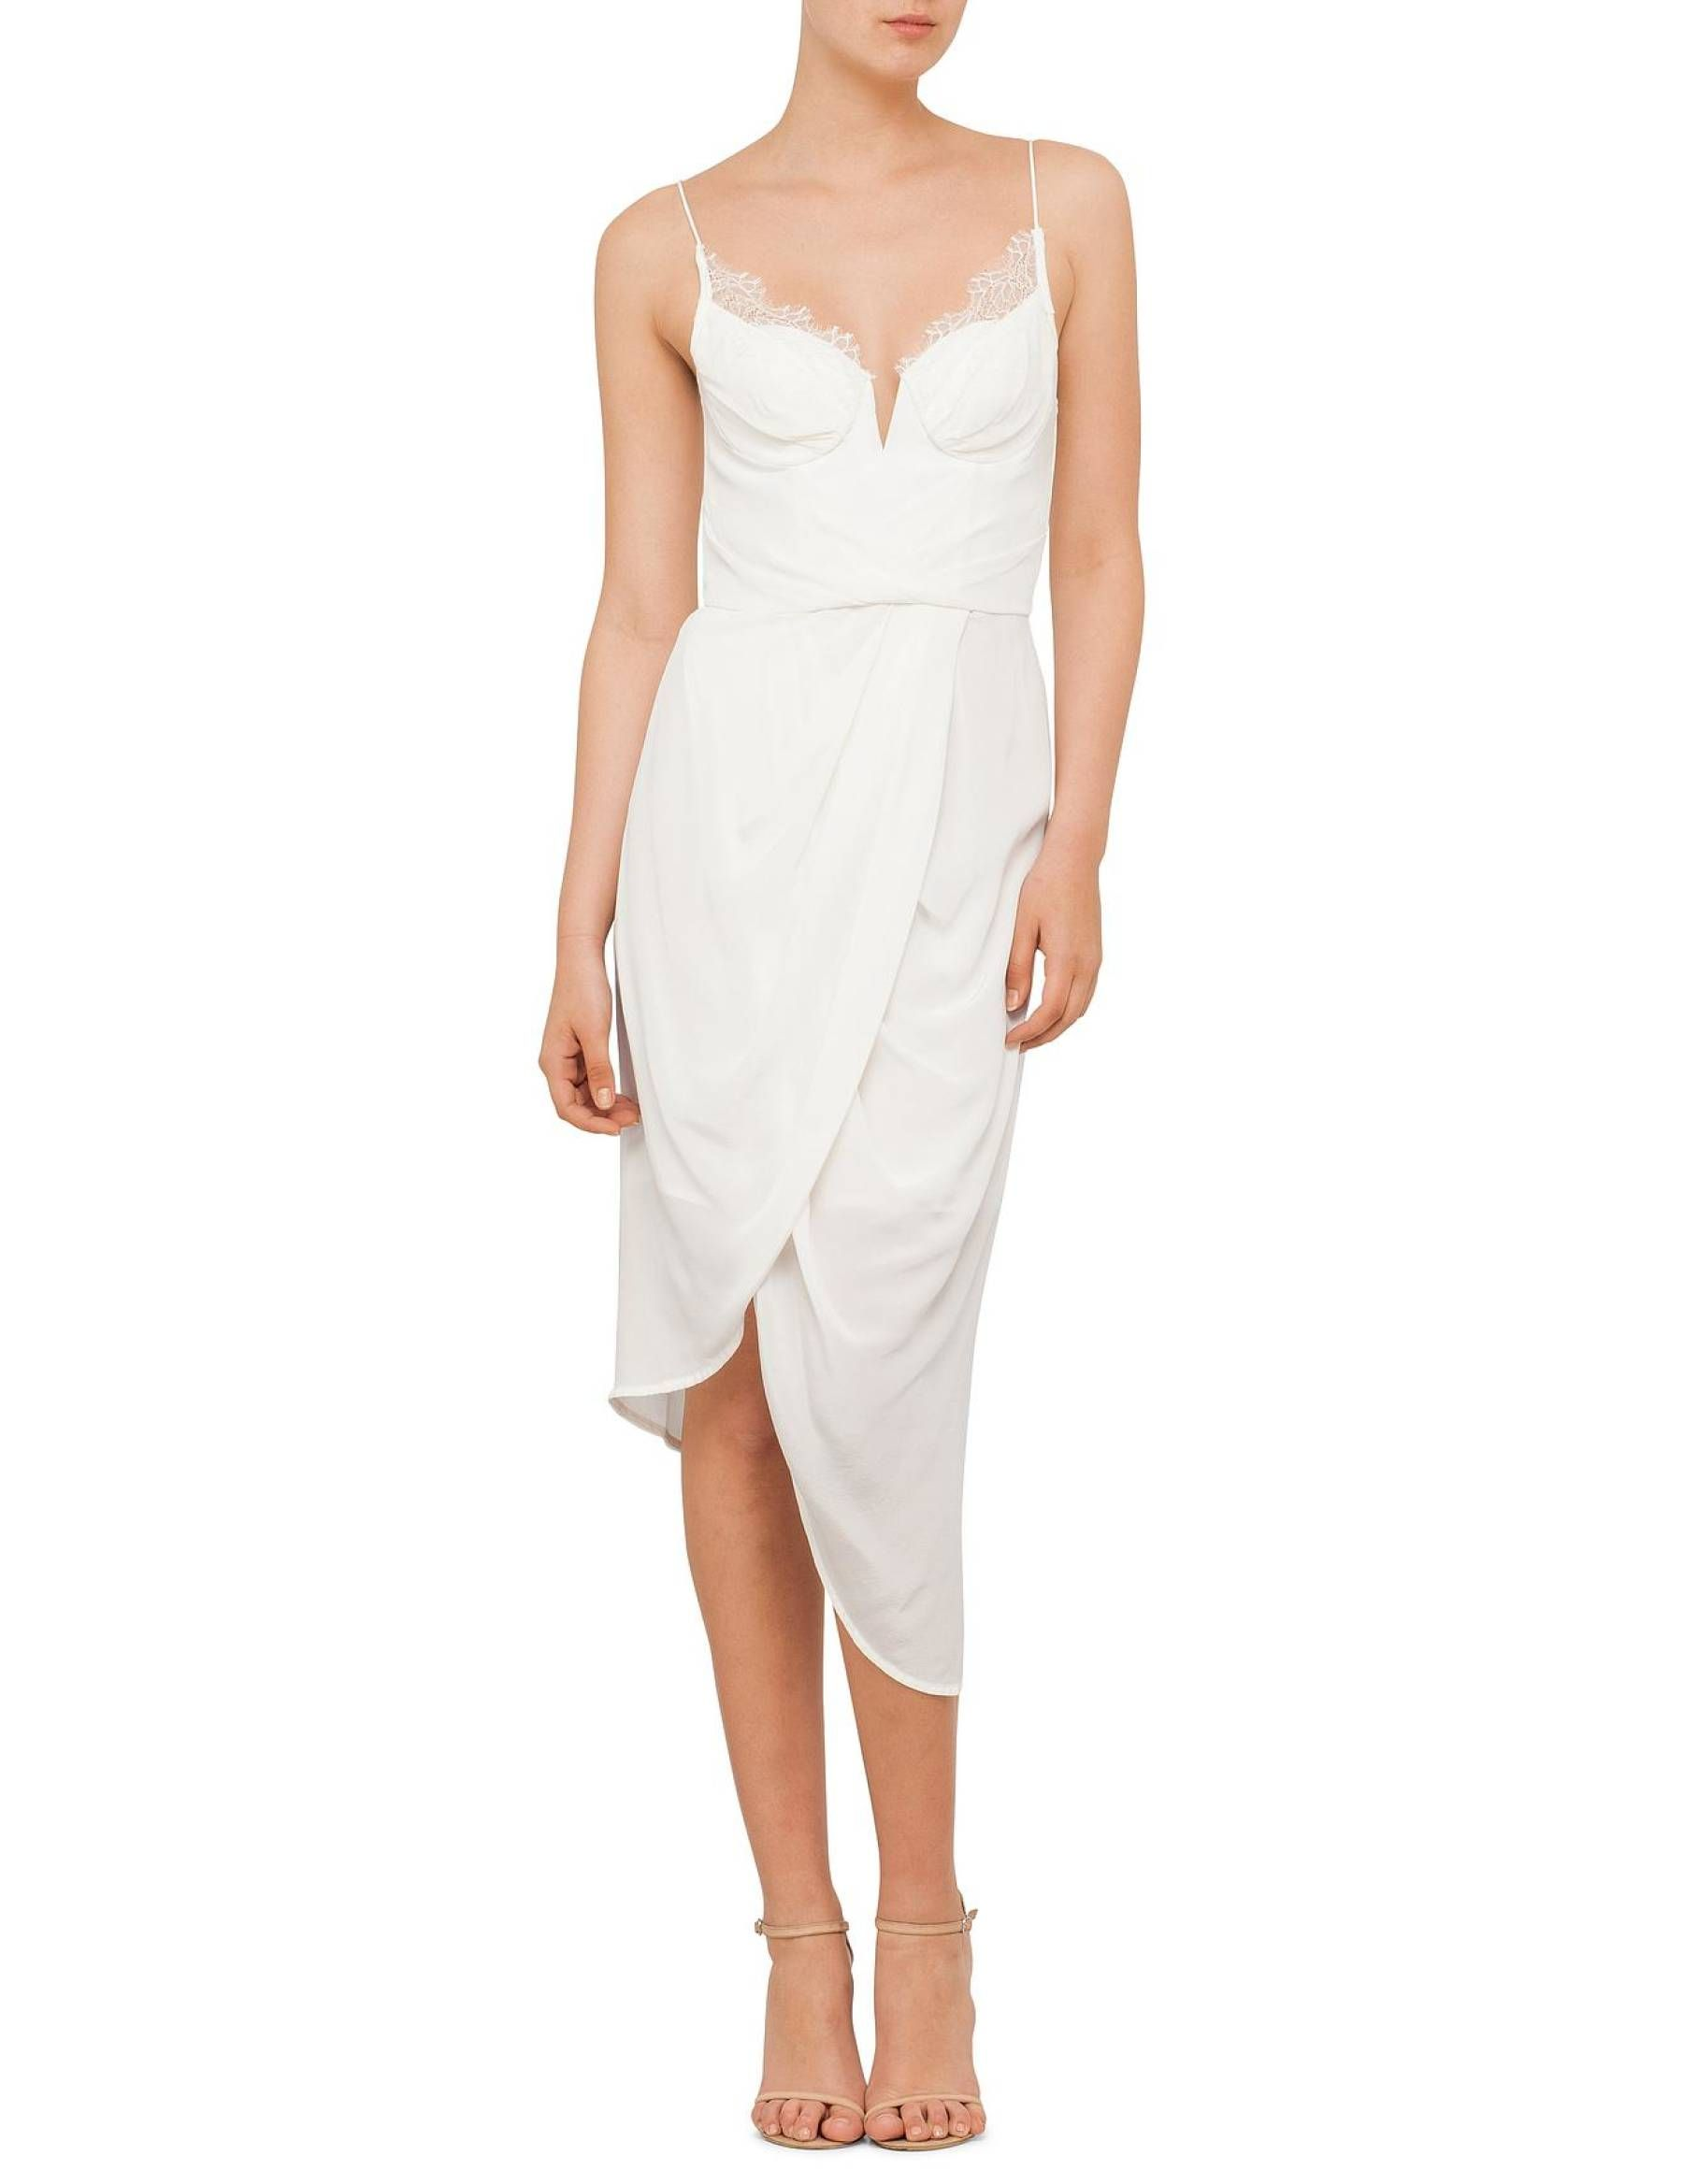 David Jones - Zimmermann Silk Lace Underwire Dress | Outfits ...